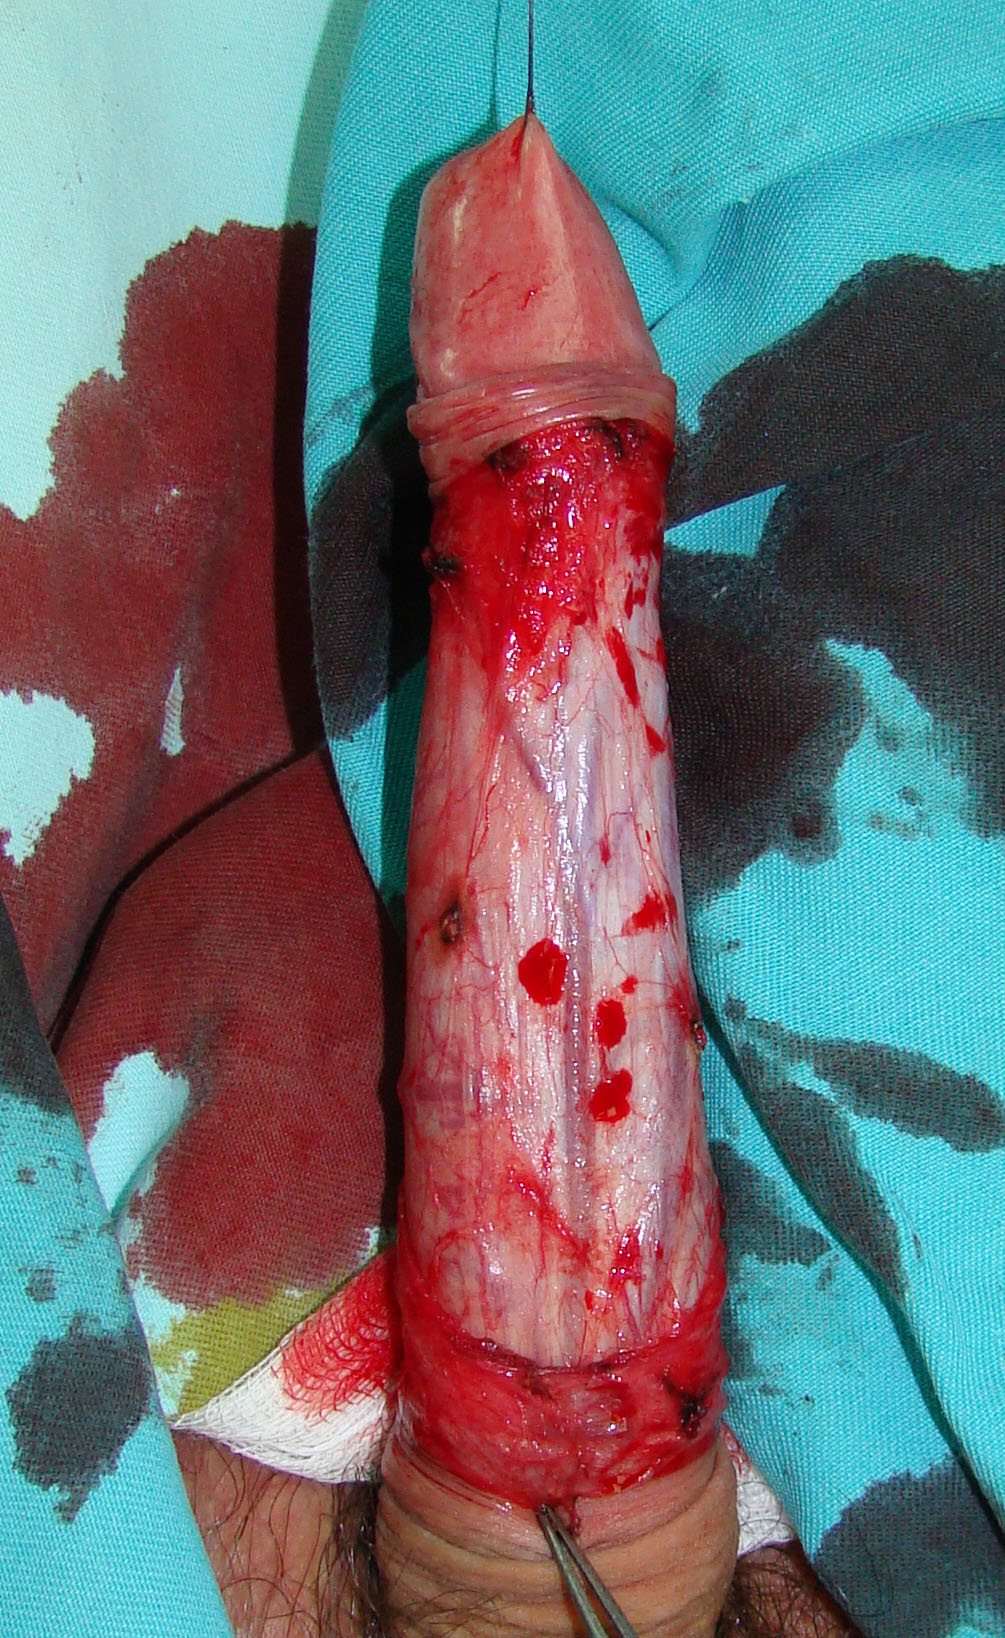 001 only right penile artery..JPG